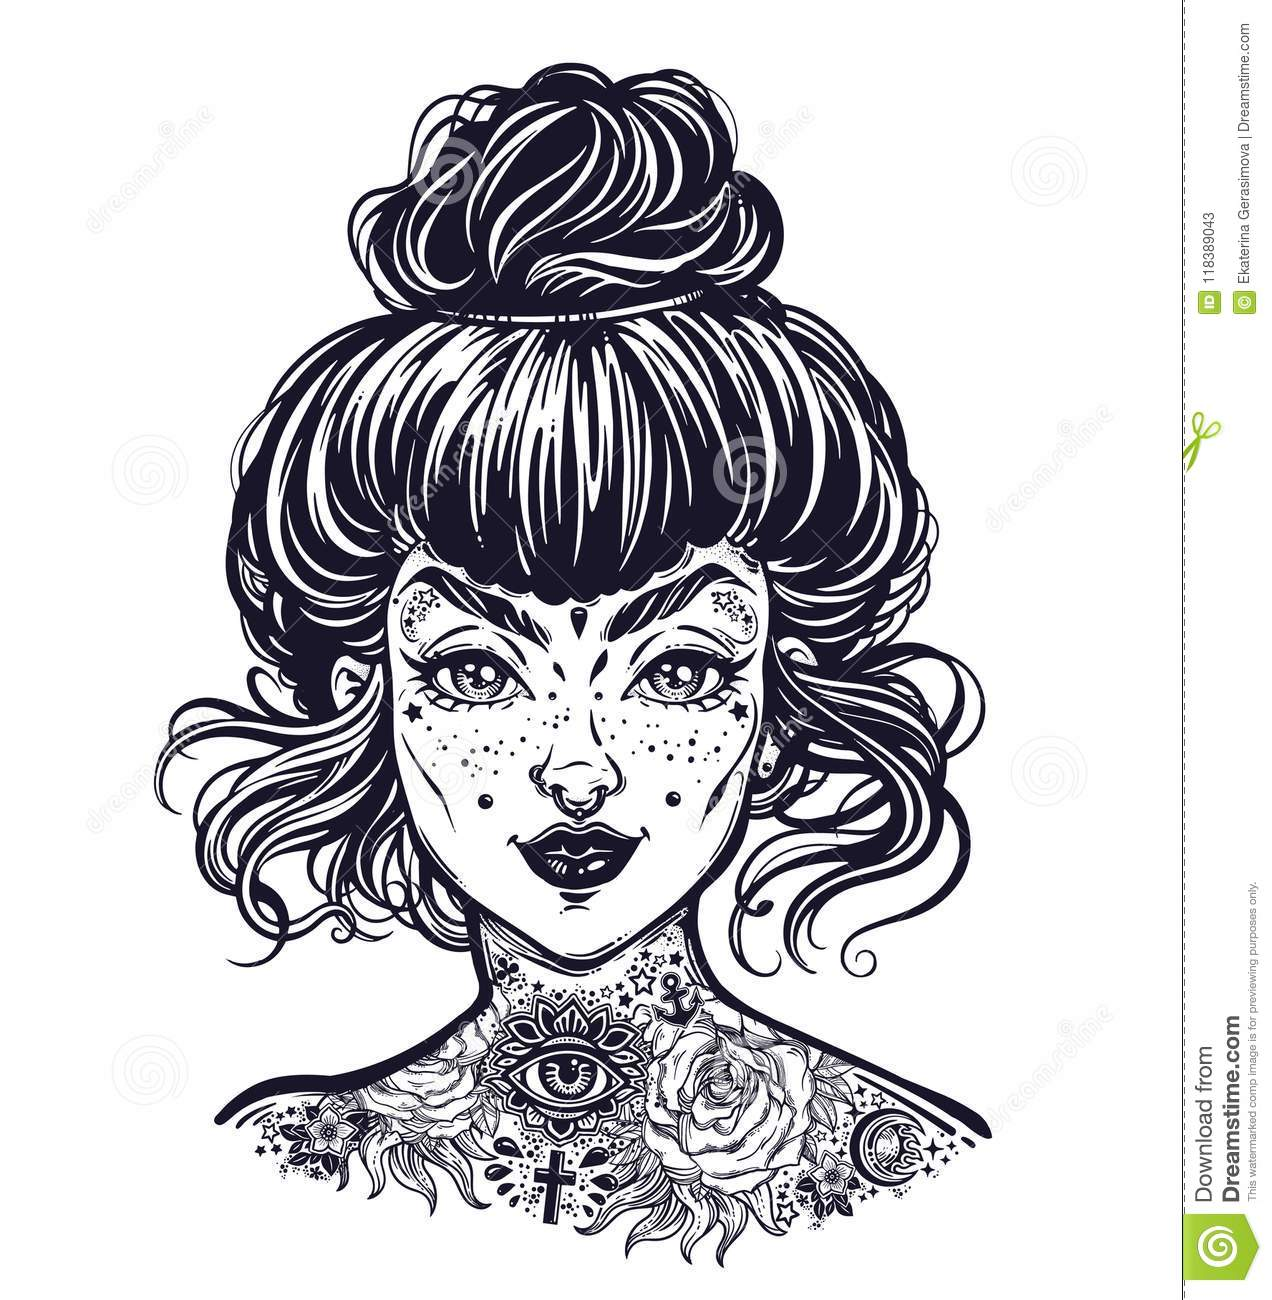 17f78a1a2c899 Inked woman portrait with vintage bun hair, neck flash tattoo. Tattooed  pierced beautiful girl face with freckles. Rockabilly style.